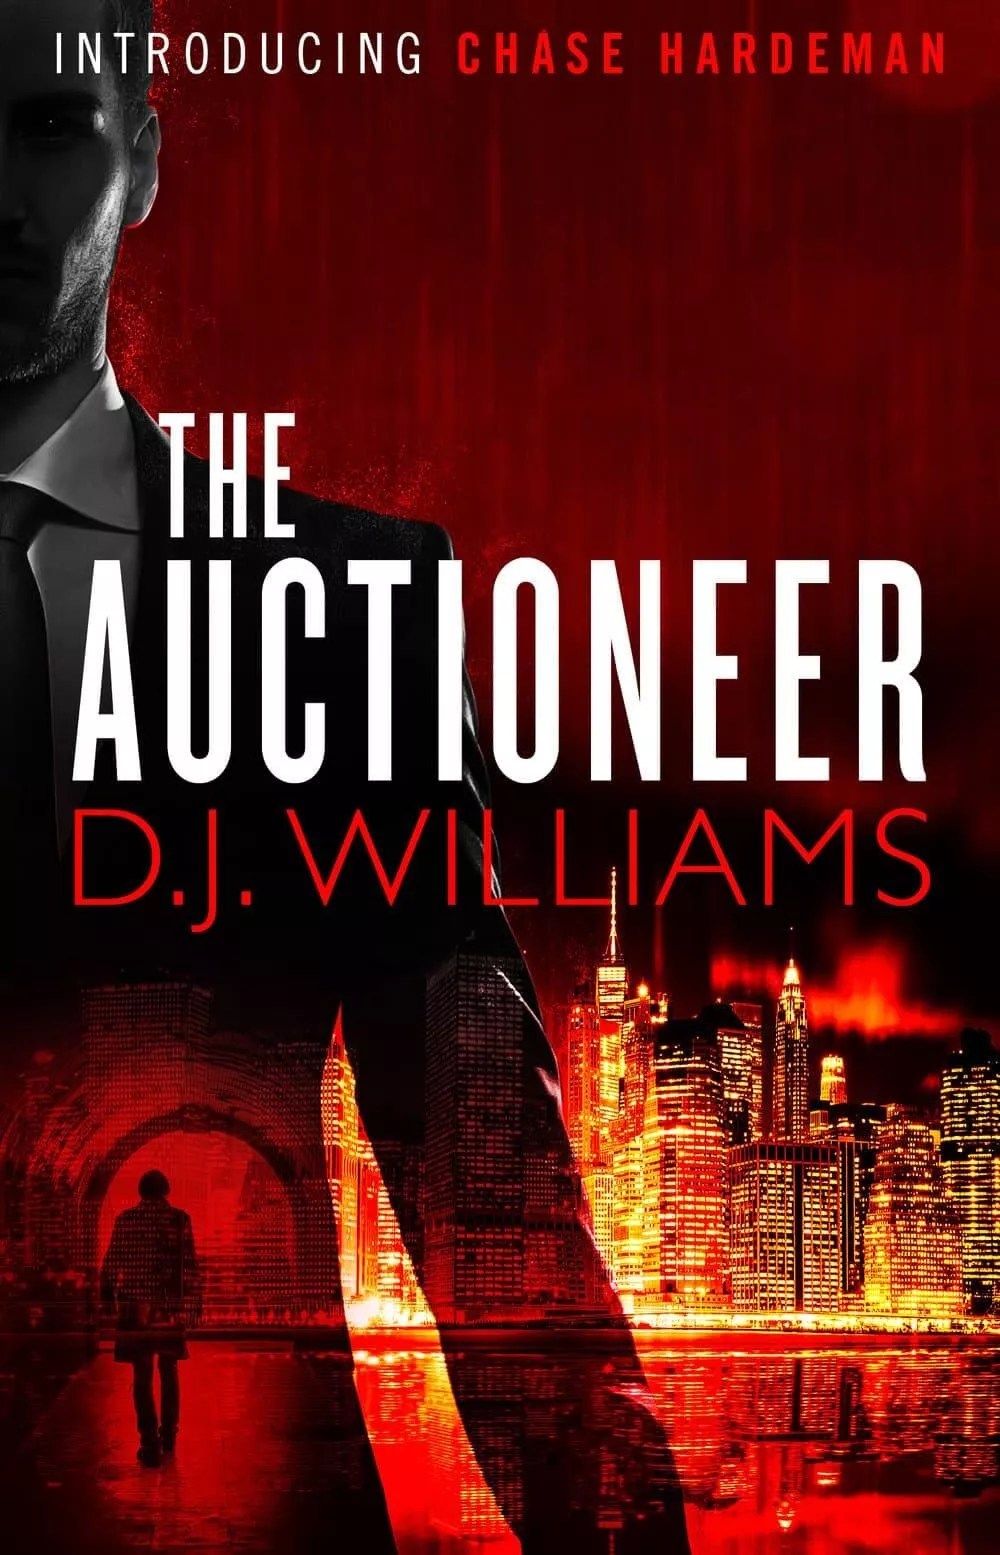 the auctioneer dj williams